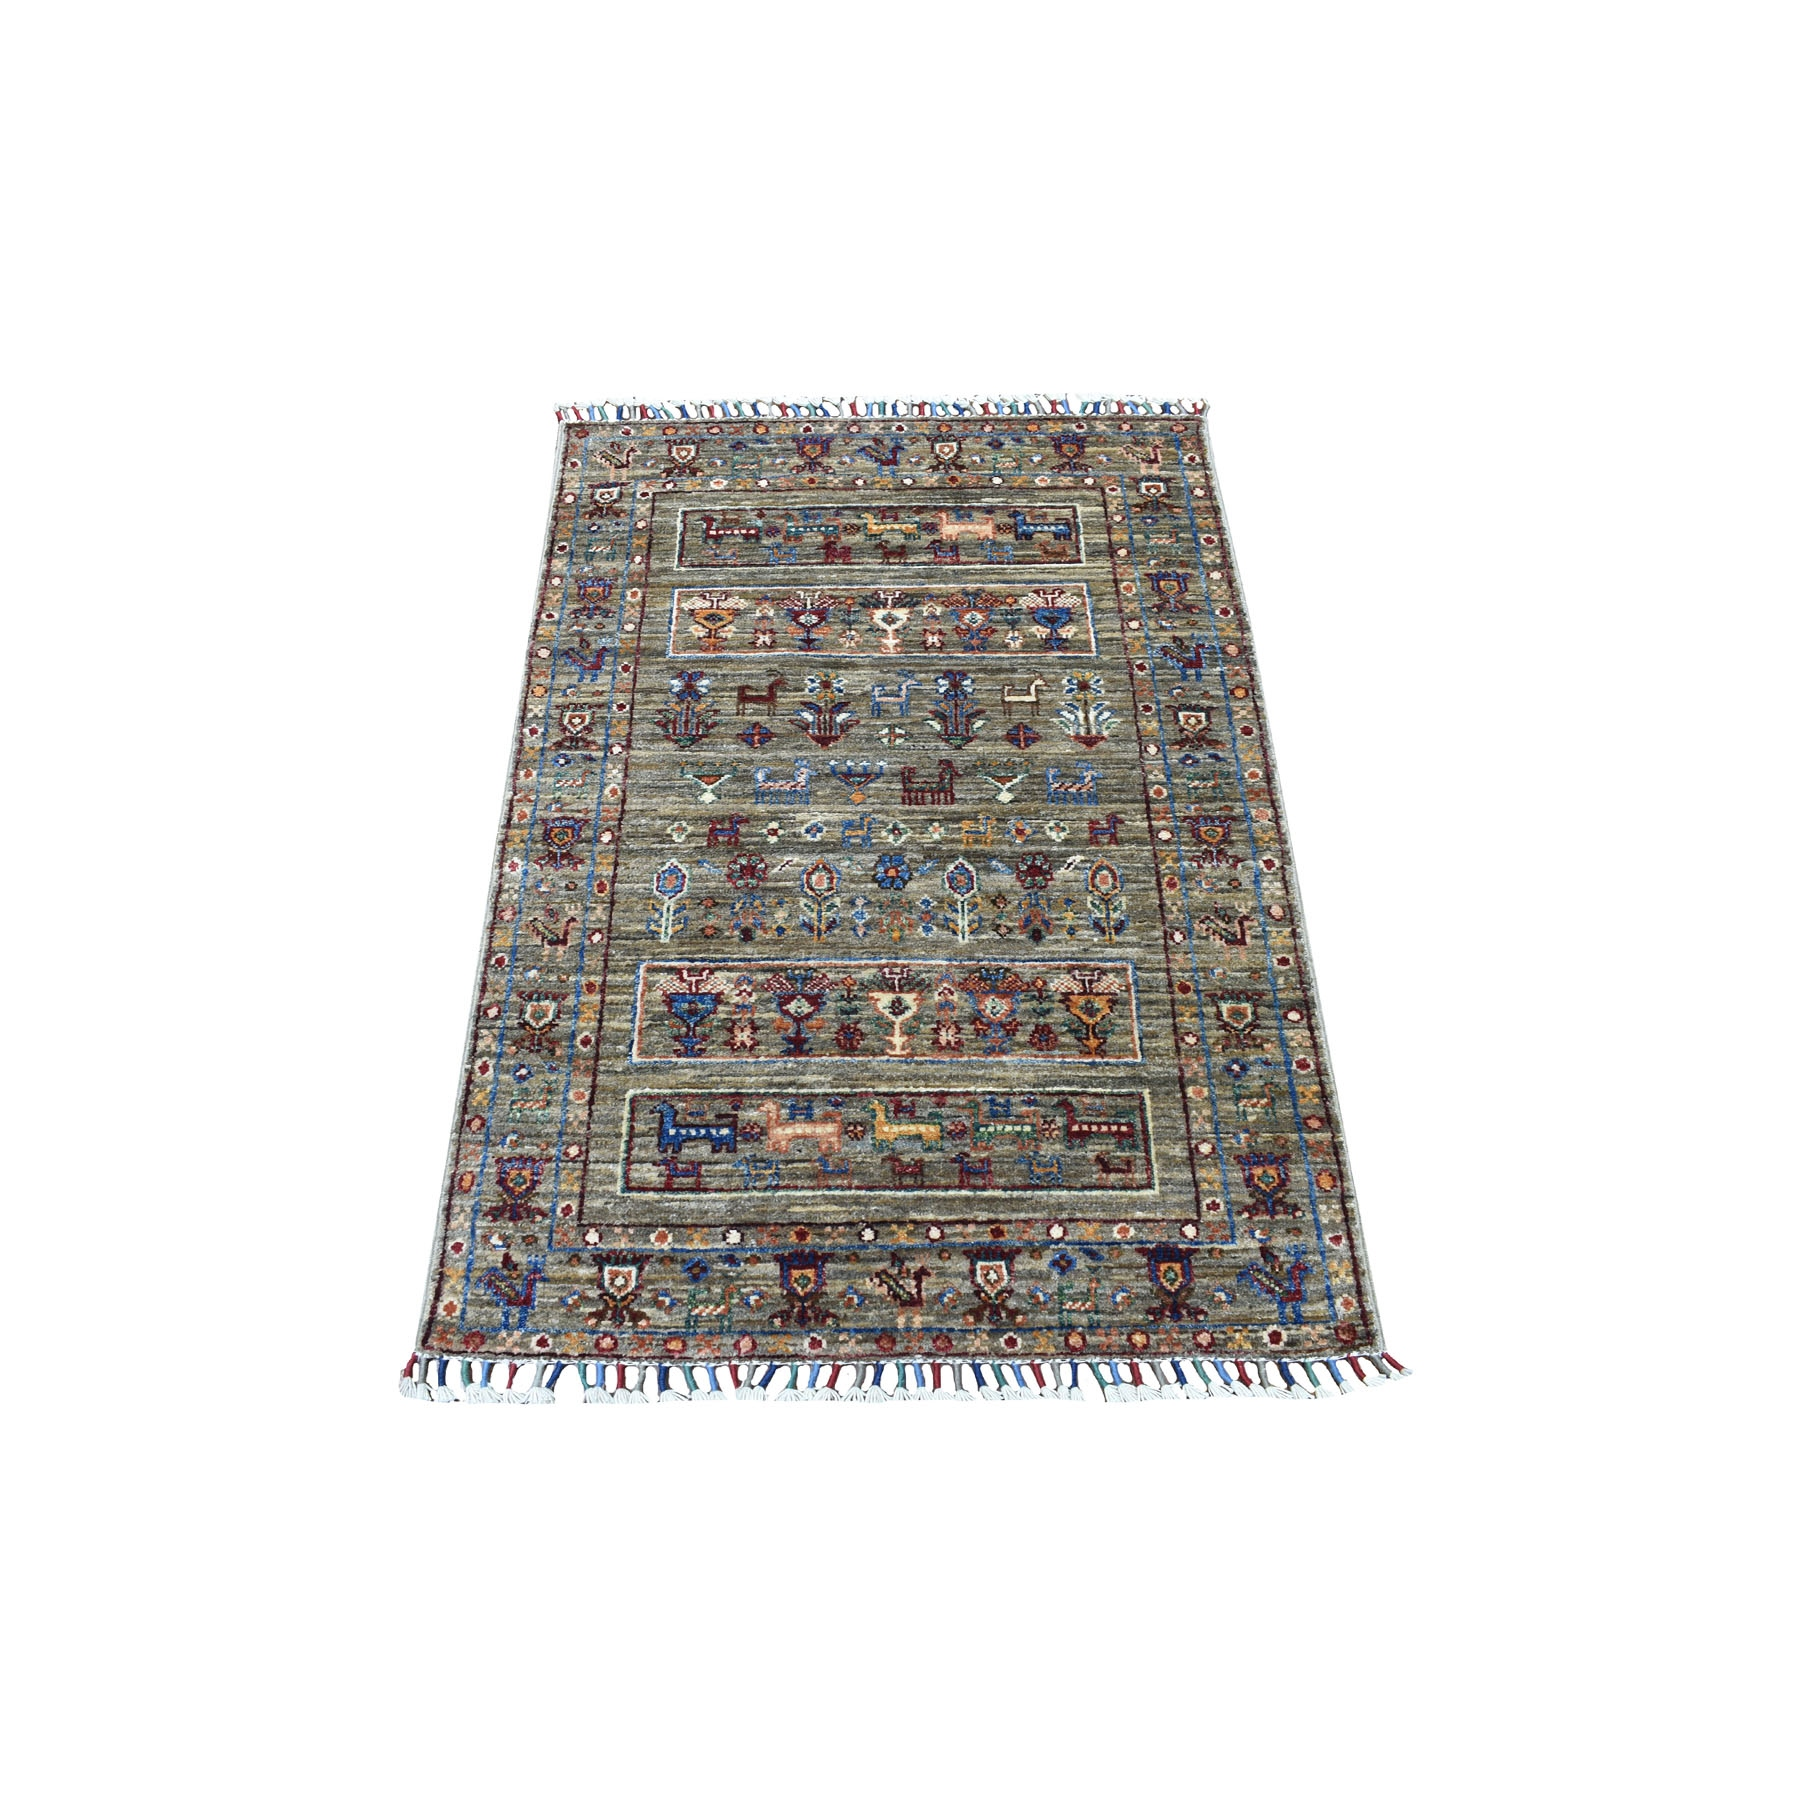 "2'6""x3'10"" Gray With Colorful Tassles Hand Knotted Super Kazak Khorjin Design Vibrant Wool Oriental Rug"